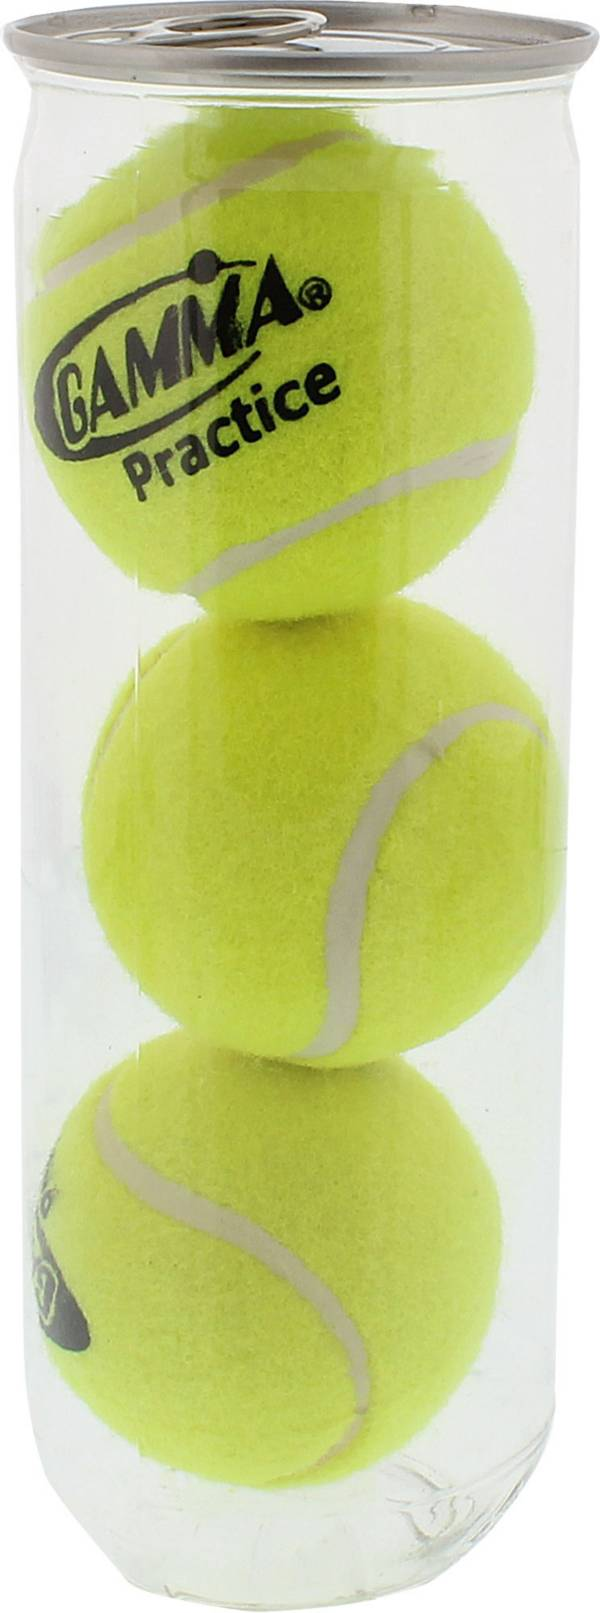 GAMMA Practice Tennis Balls – 3 Can product image